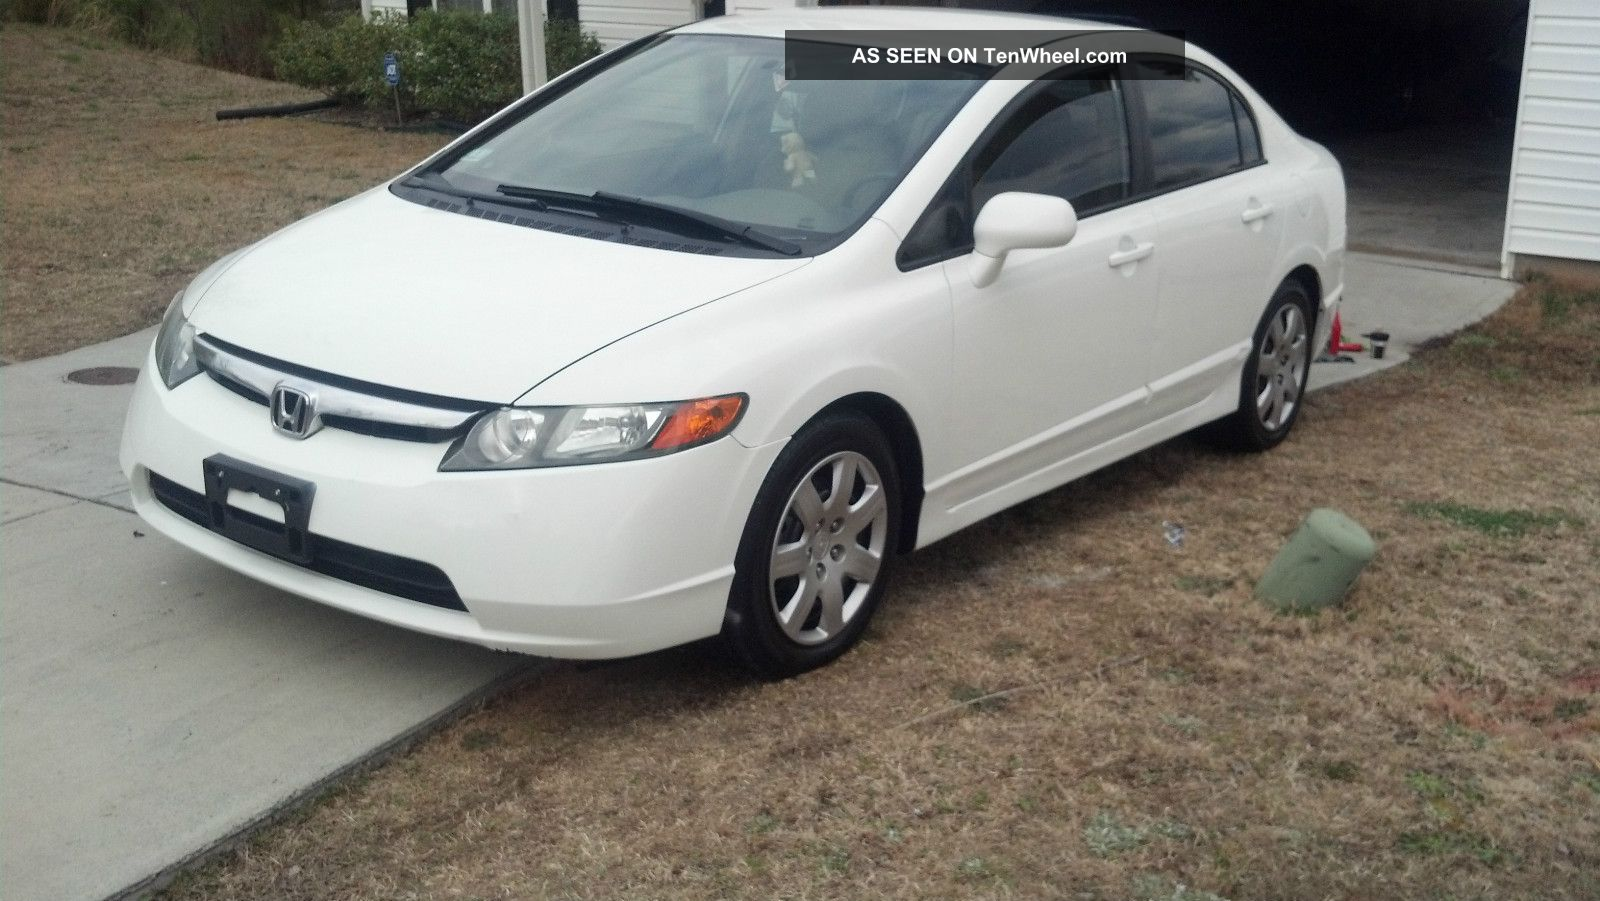 2007 honda civic lx sedan 4 door 1 8l buy it now or